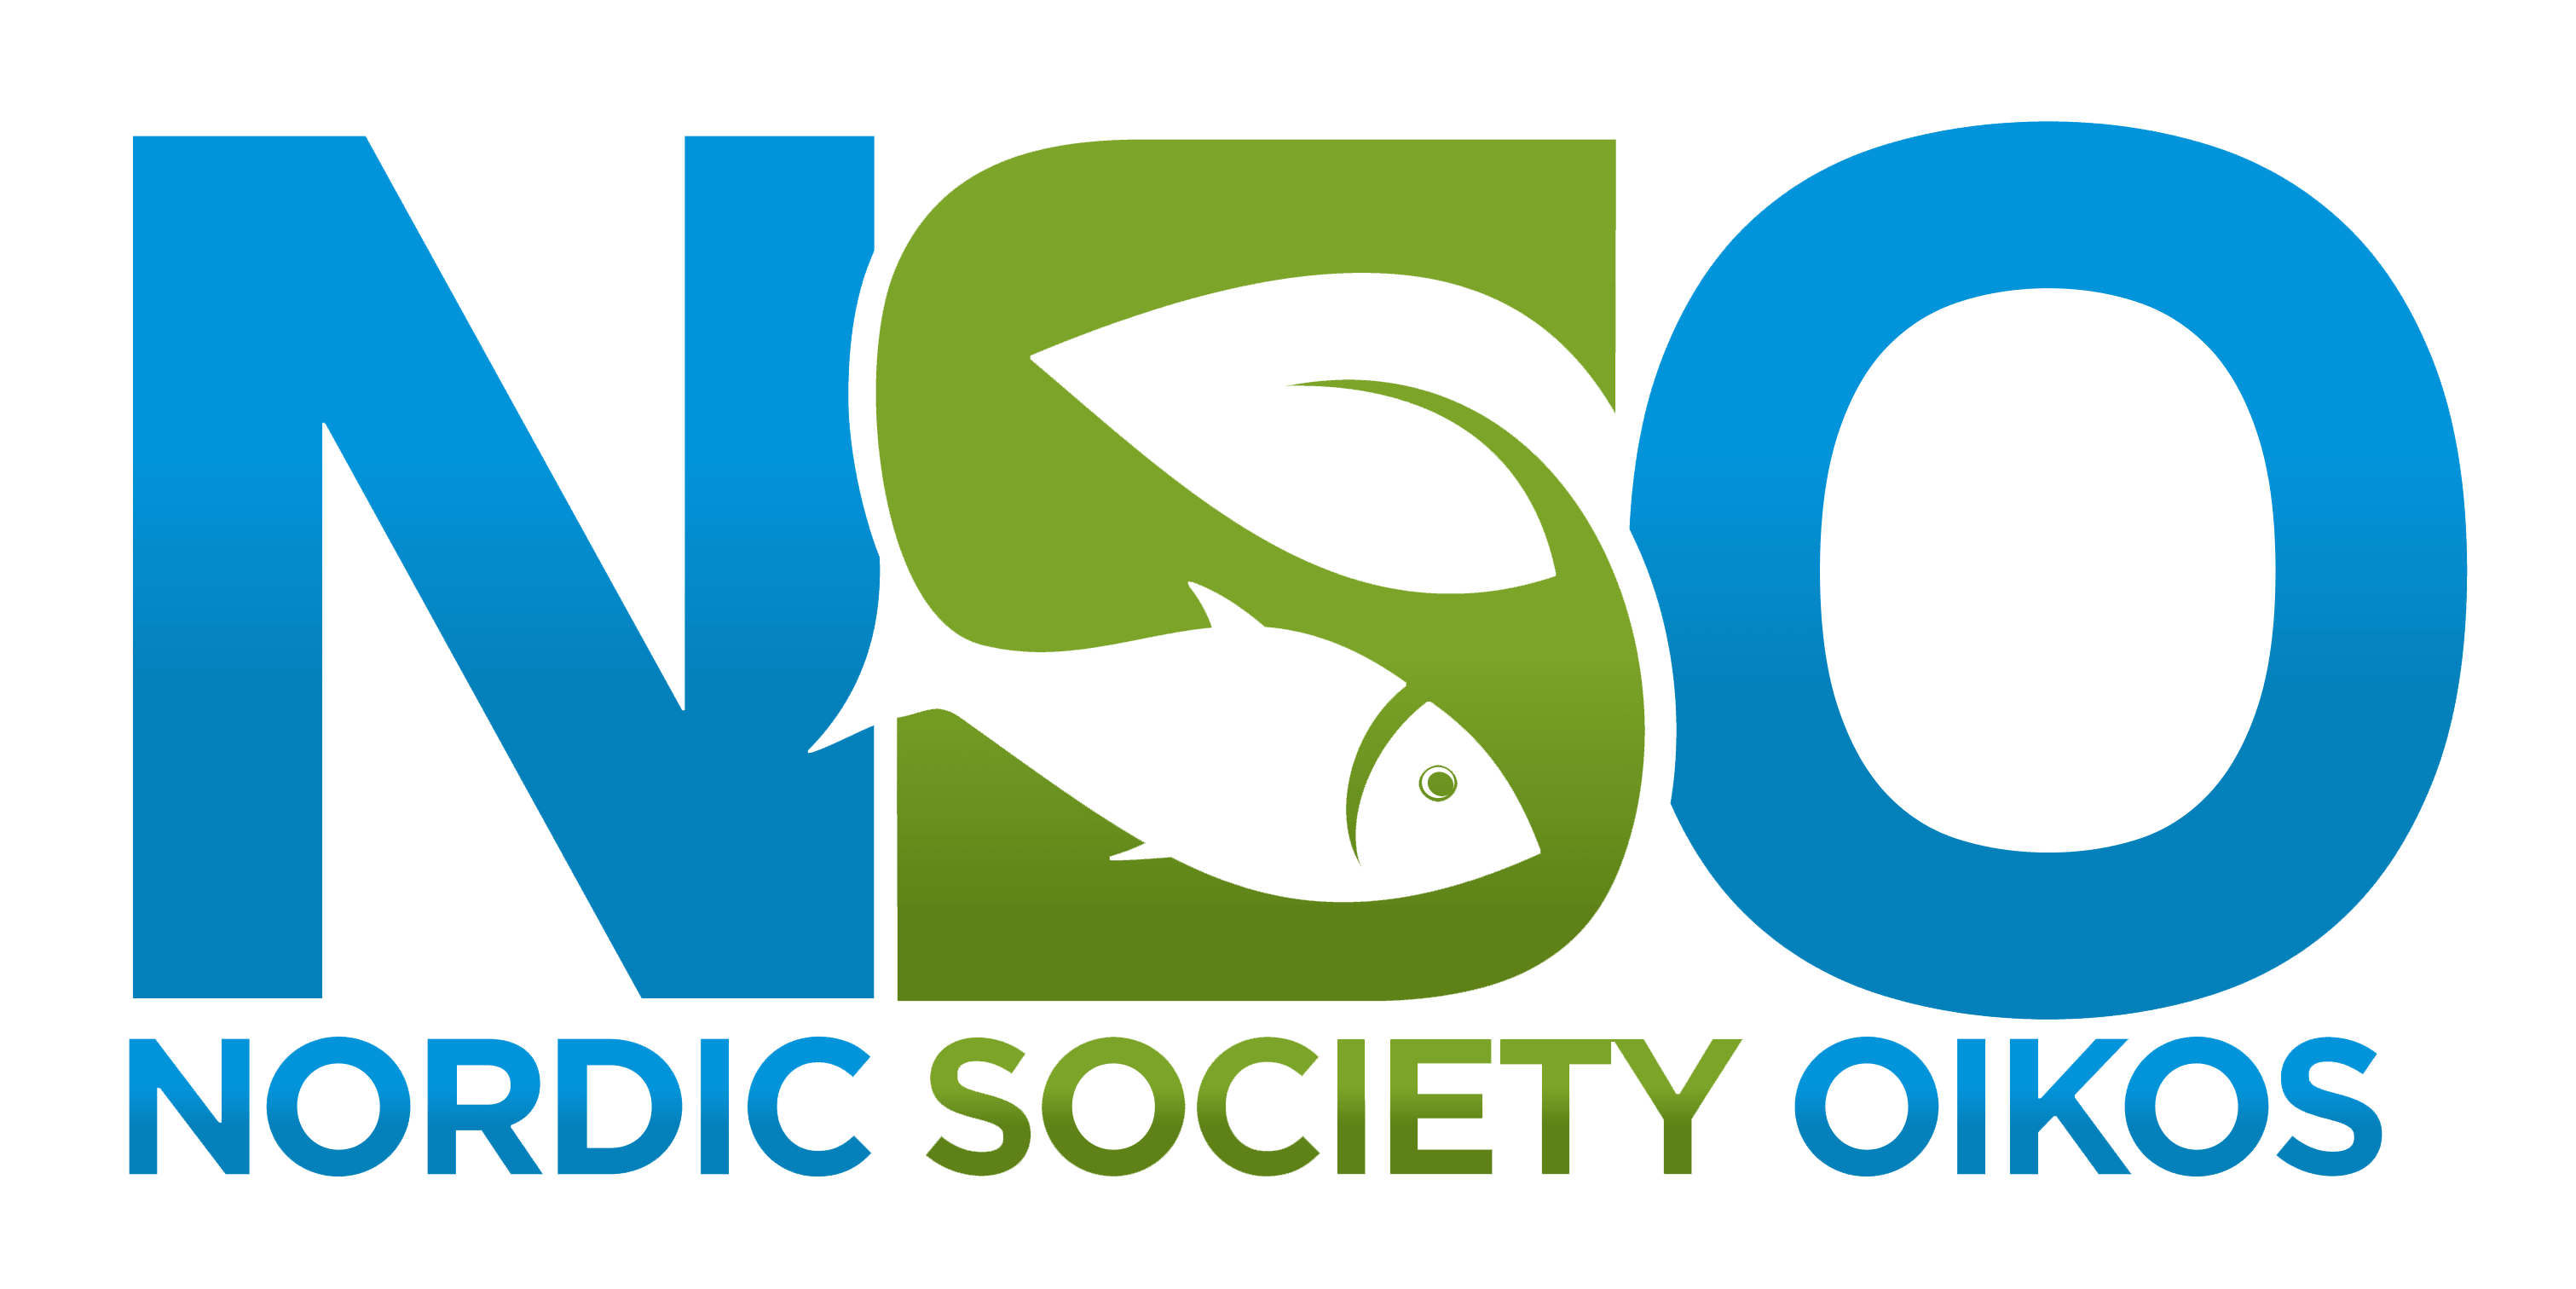 The Nordic Society Oikos Enables Cross-Over Engagement with Glue Up